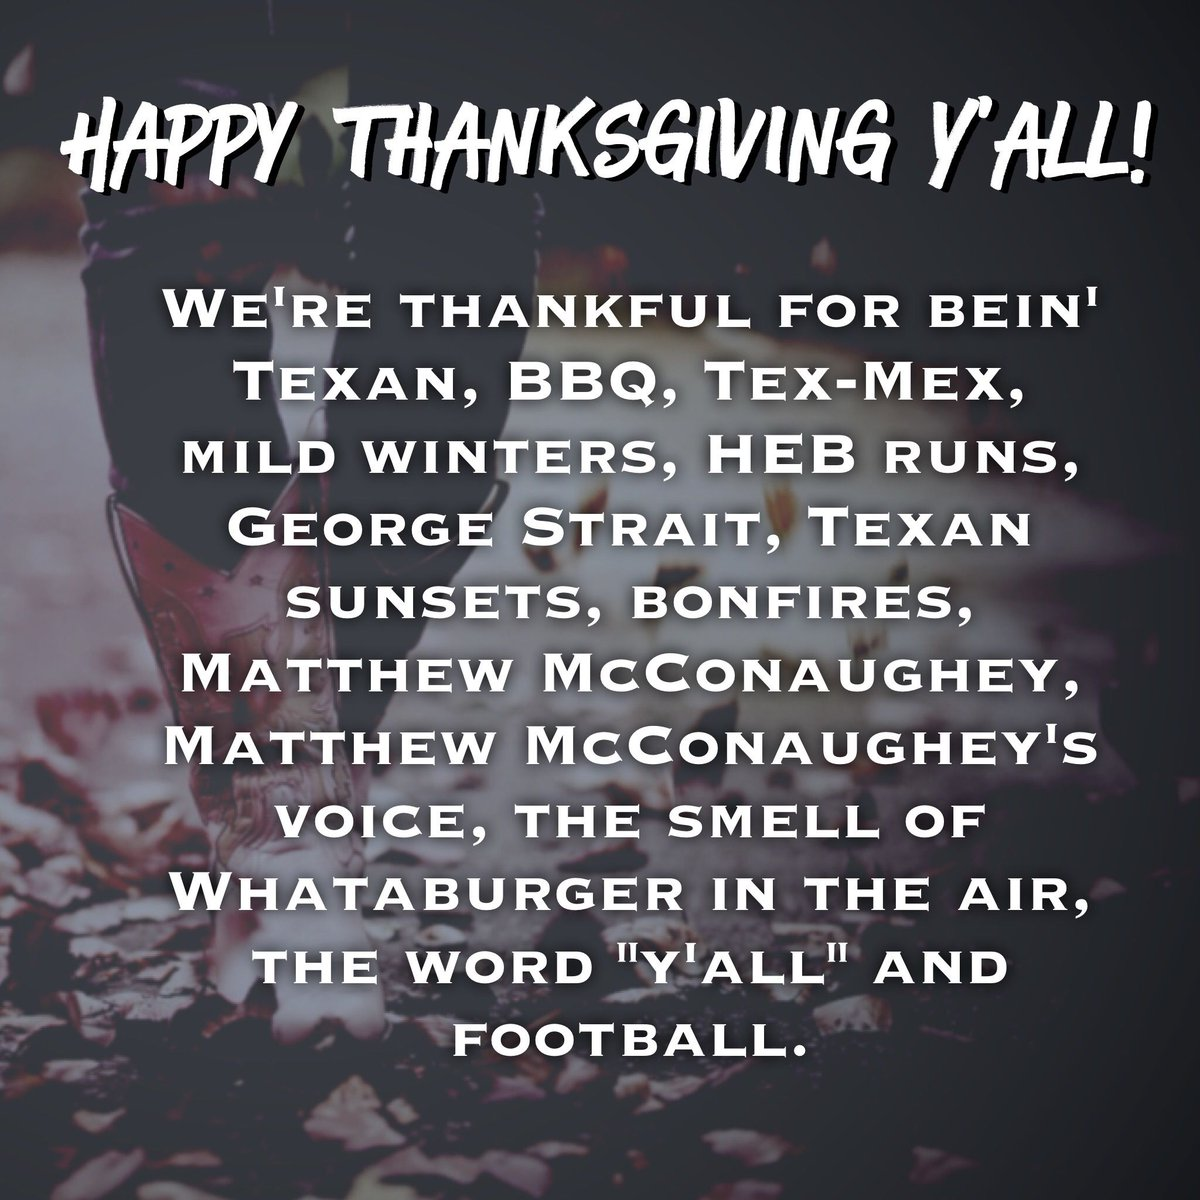 Texas Humor On Twitter Happy Thanksgiving From Our Texan Family To